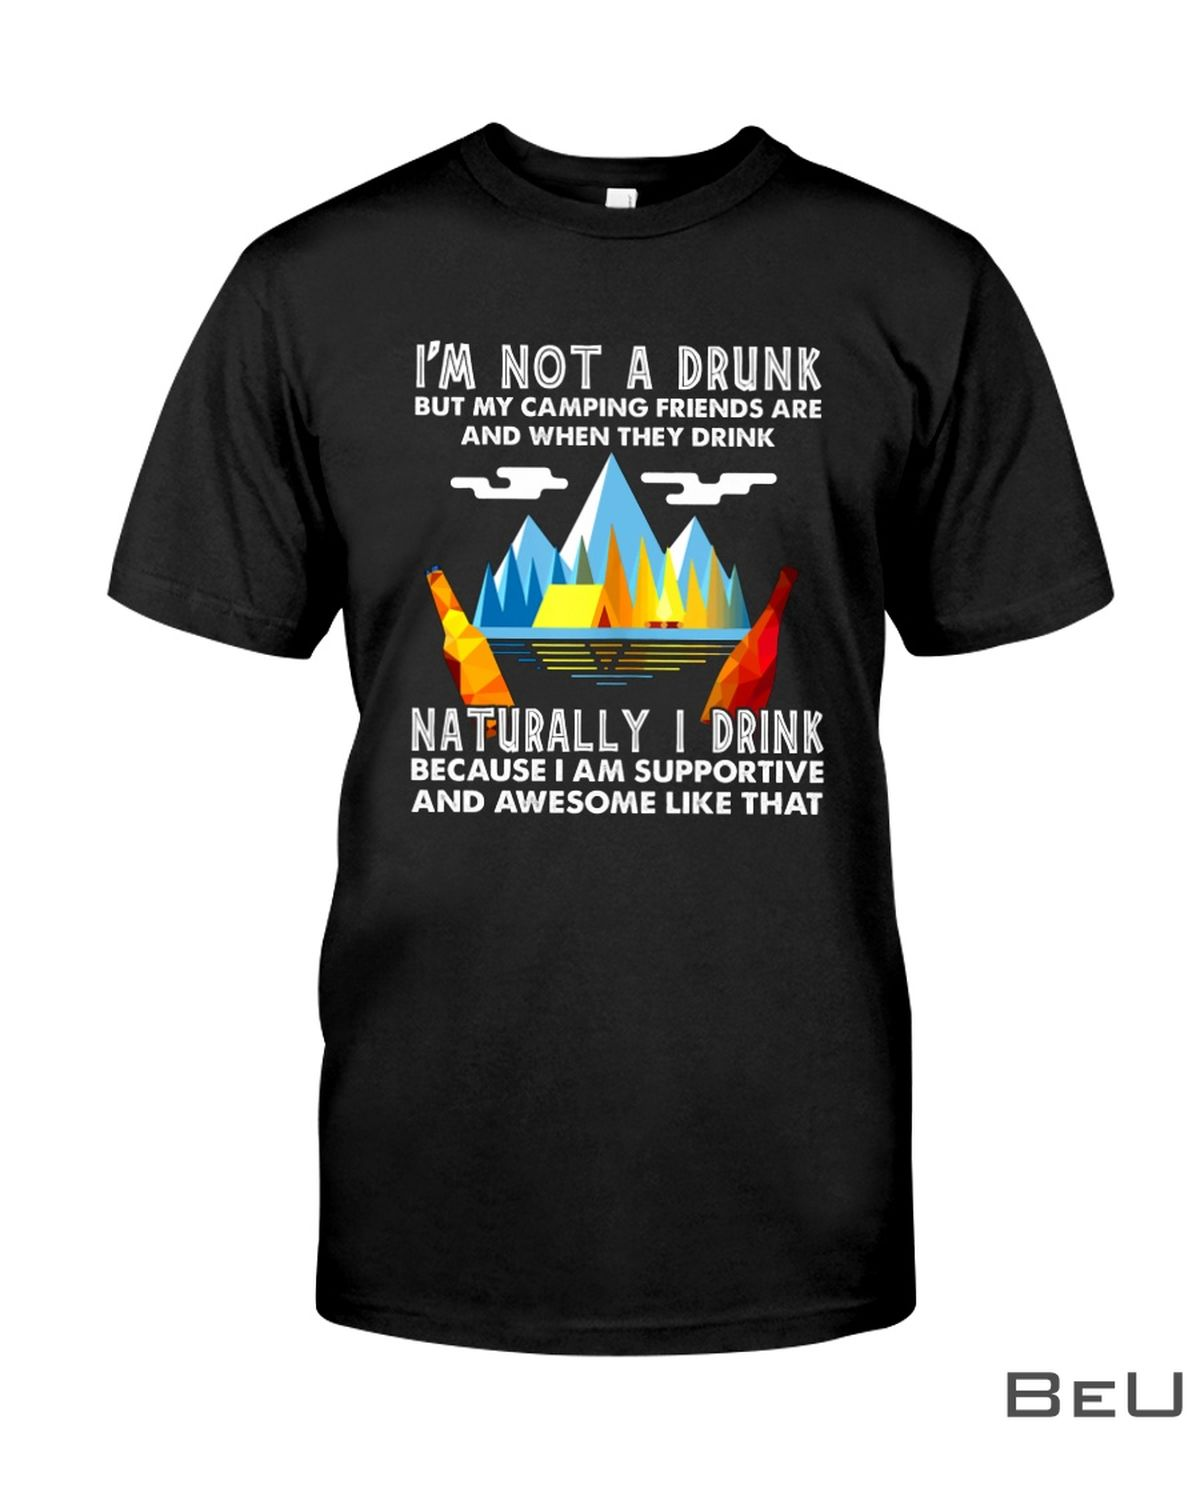 I'm Not A Drunk But My Camping Friends Are And When They Drink Shirt, hoodie, tank top